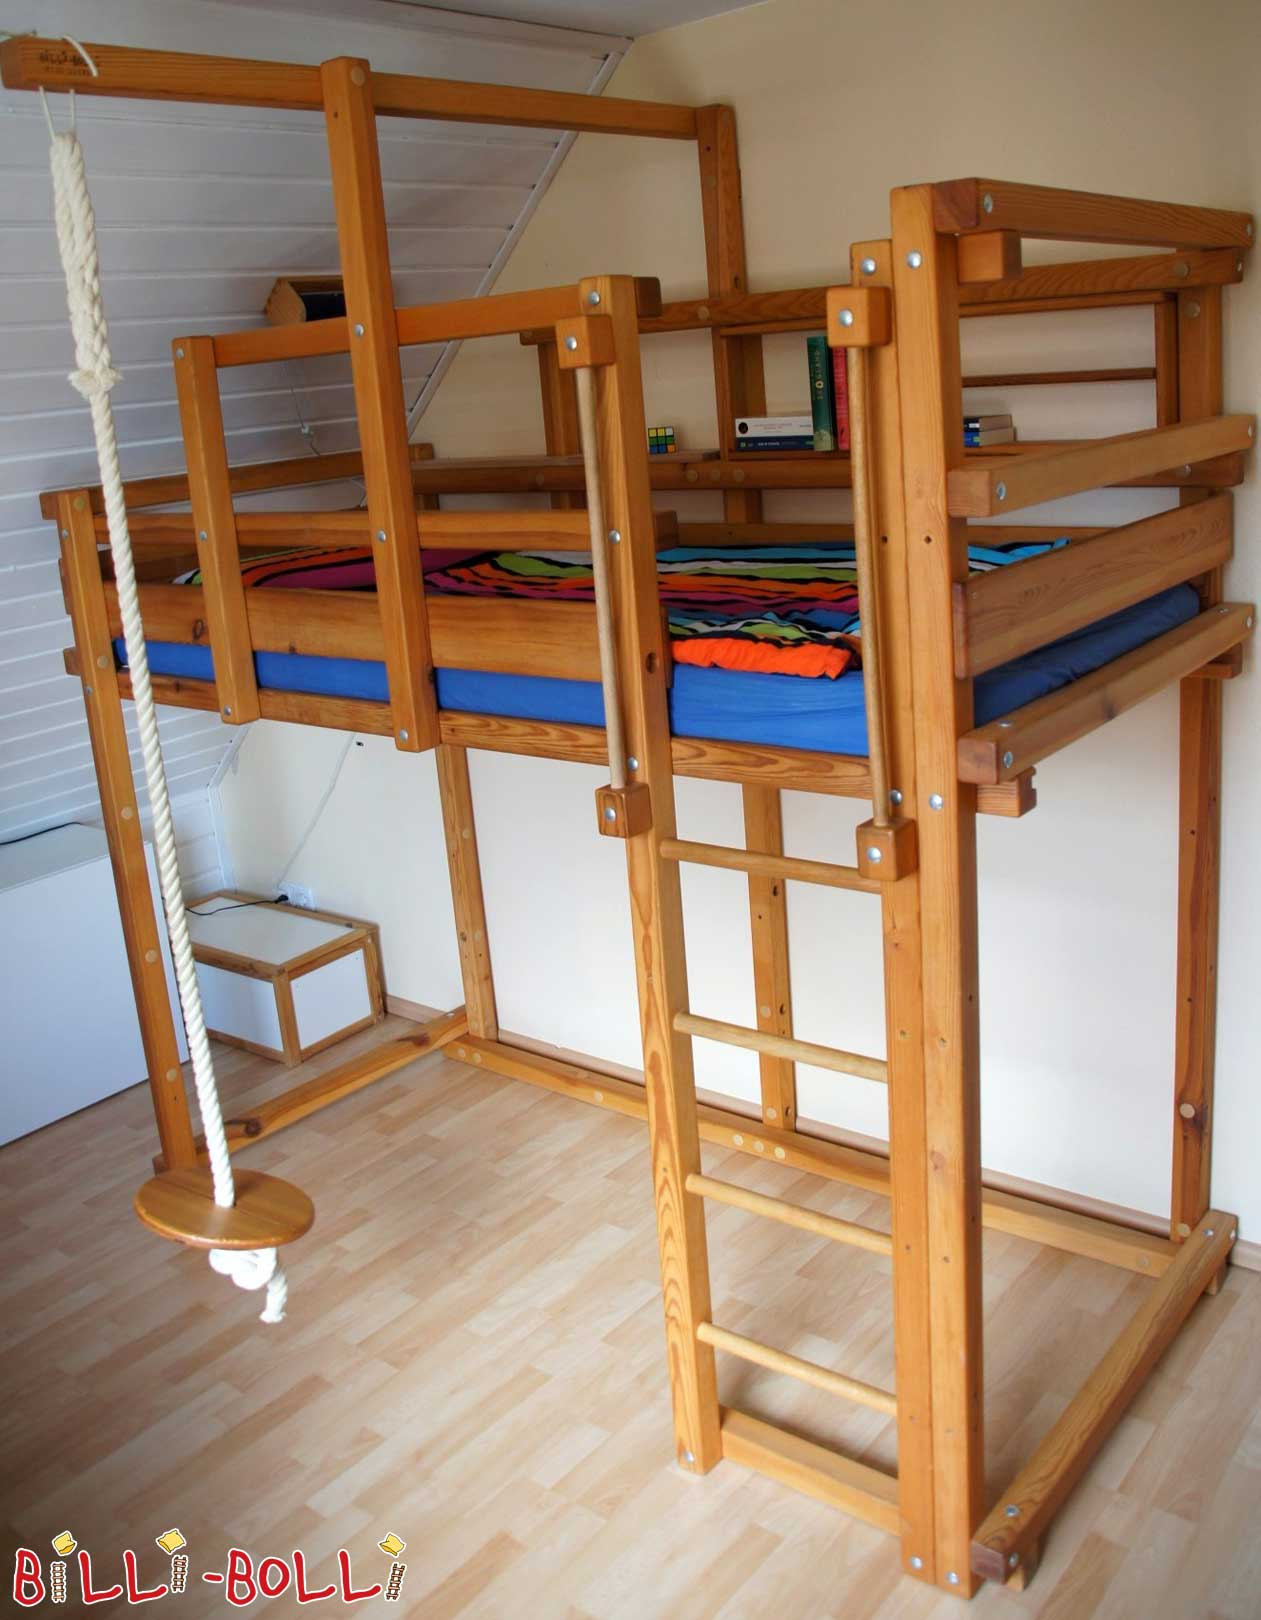 Loft bed growing with, 90 x 200 cm, with roof slope level (second hand loft bed)